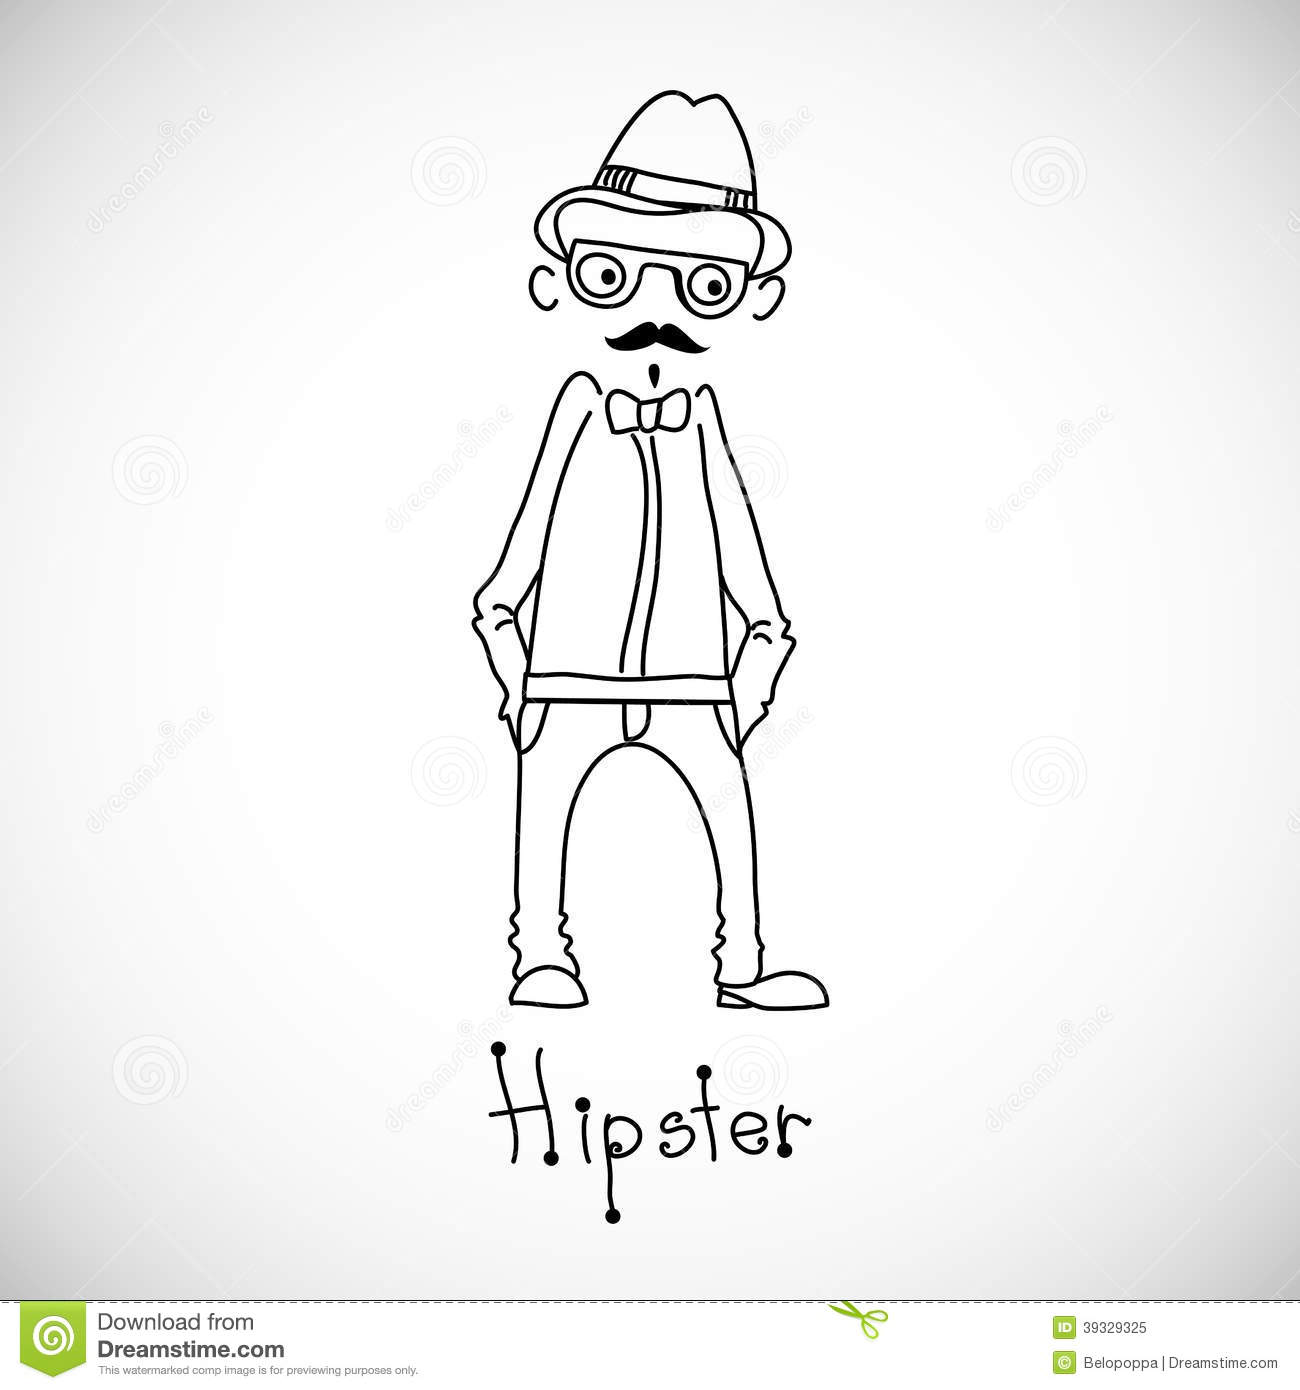 Single Line Character Art : Hipster character design vector illustration stock